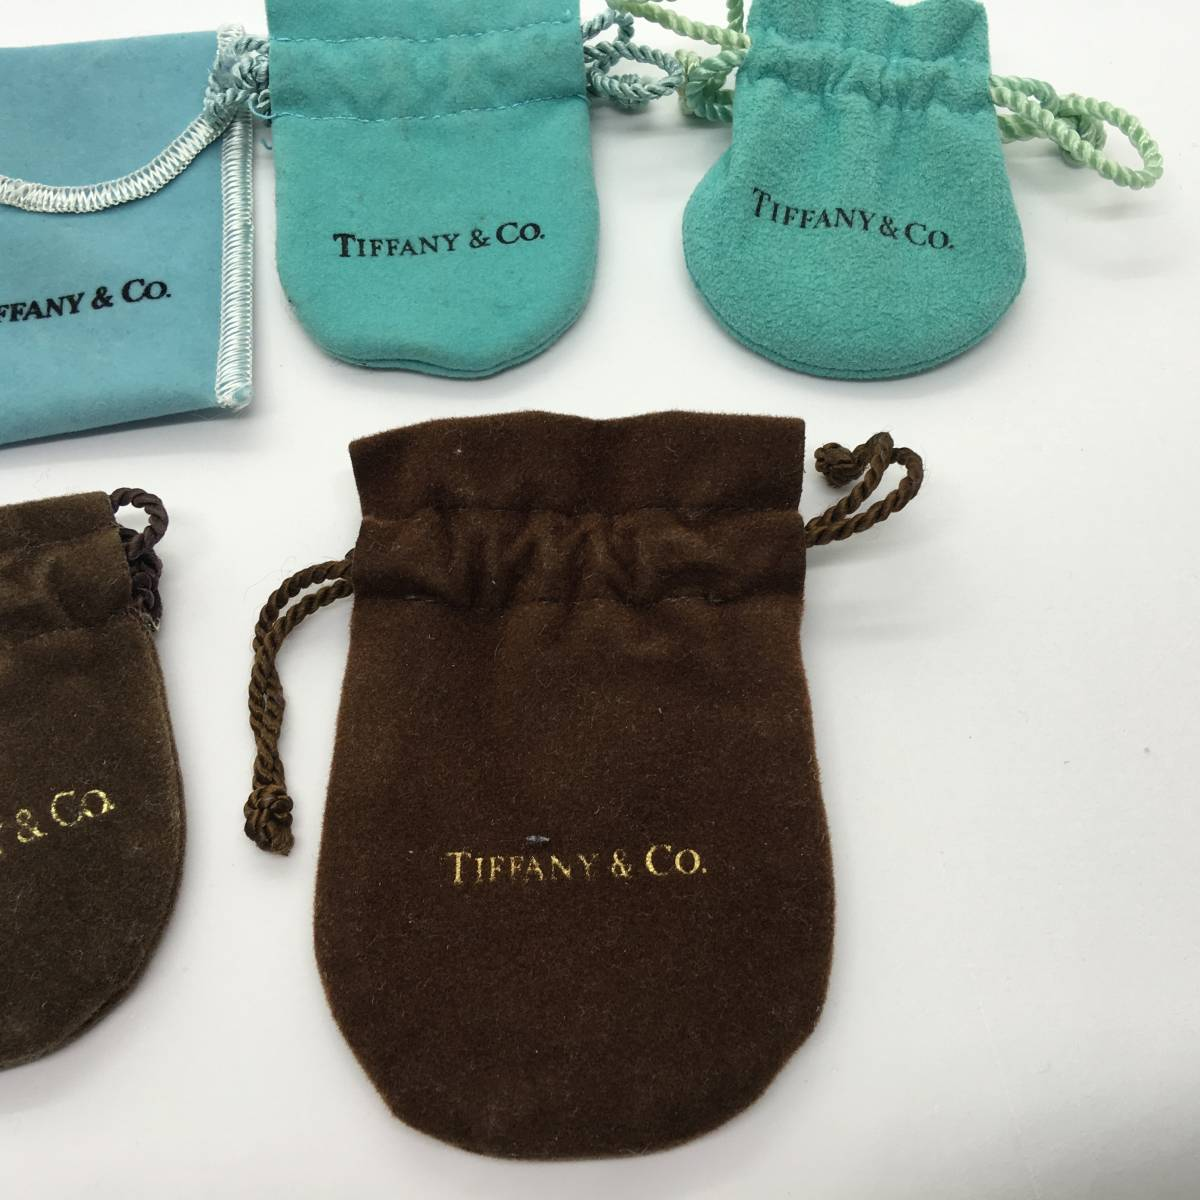 lowest price fbac7 e6195 Auction ID u284799429: 06184 ティファニー TIFFANY & Co. 箱 ...